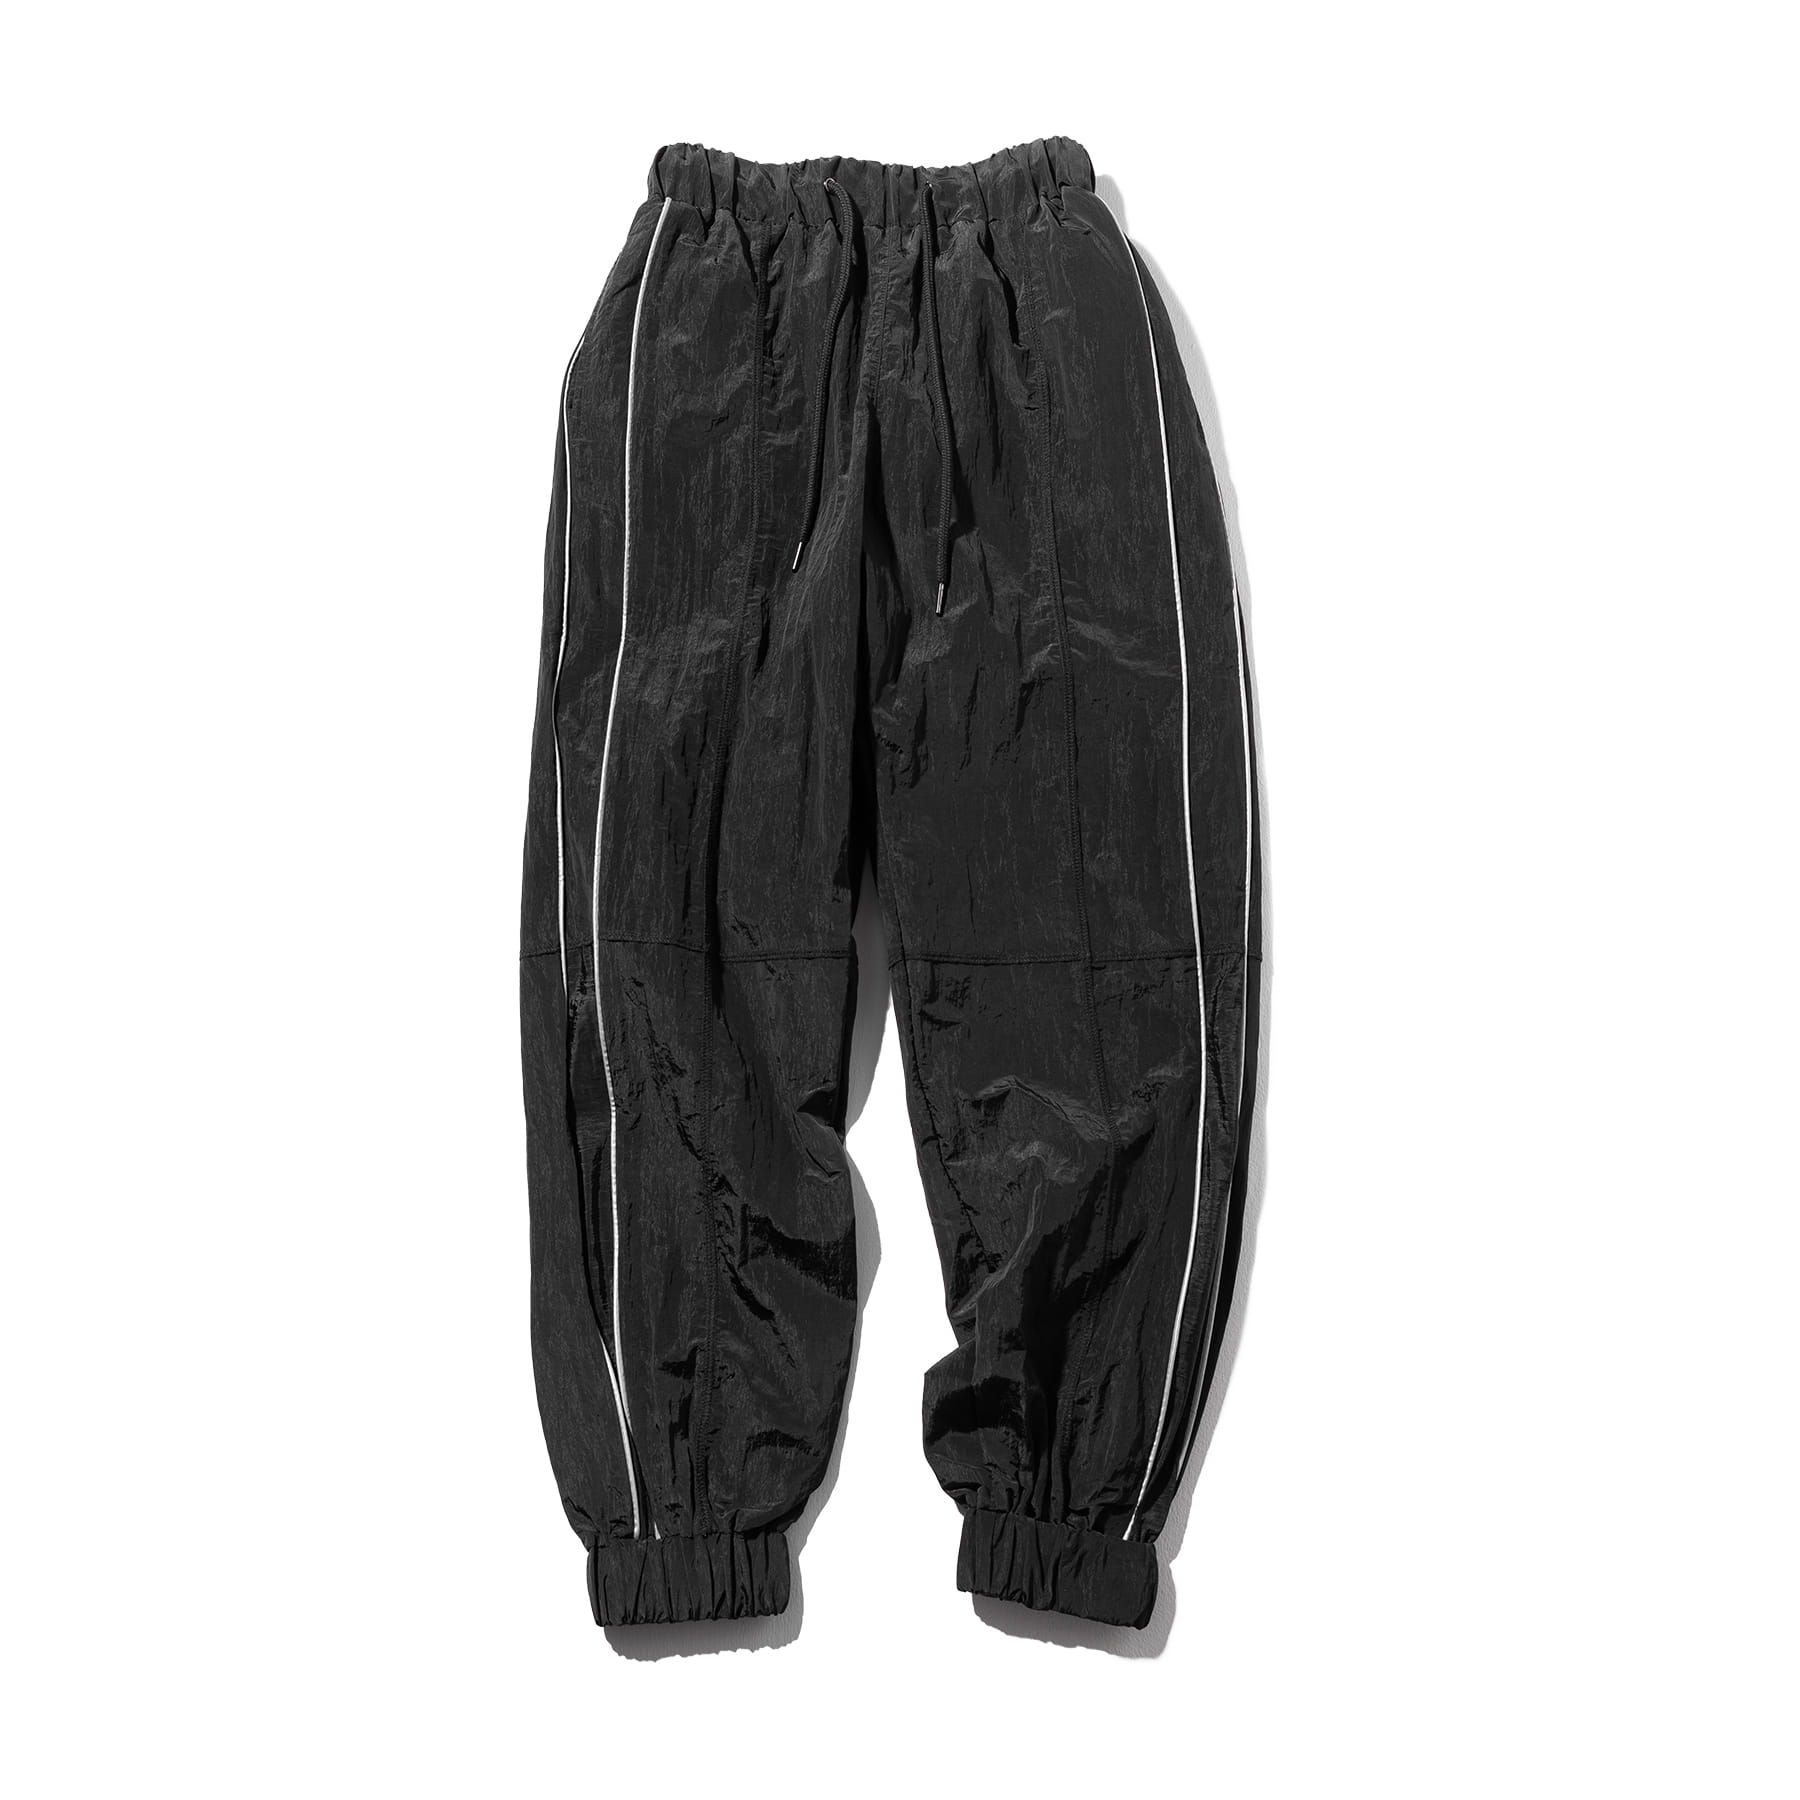 (30%)3M NYLON TRAINNING PANTS MSOTP006-BK